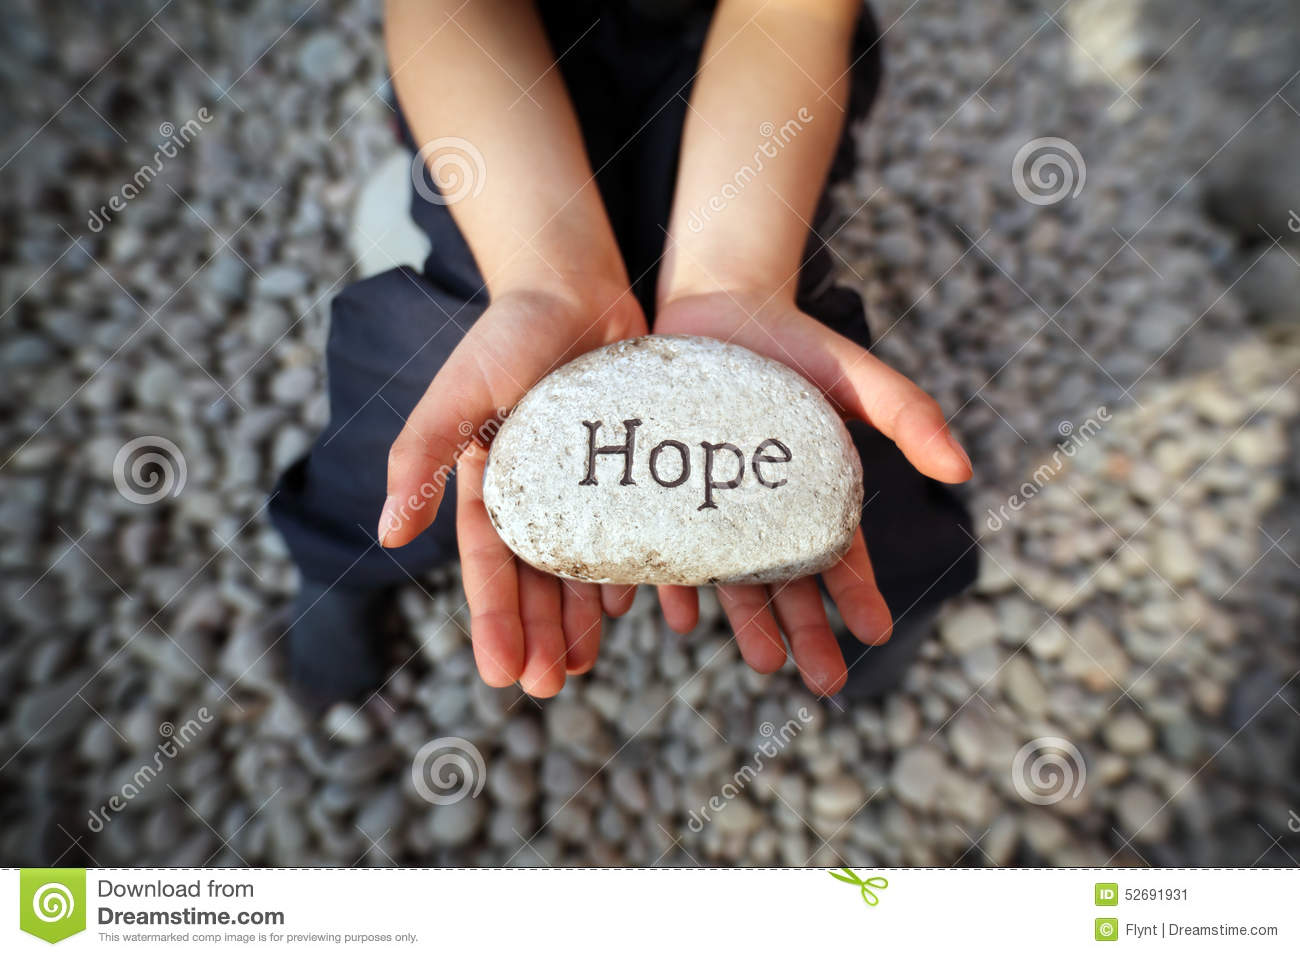 Download Hope of a child stock image. Image of hand, christianity - 52691931